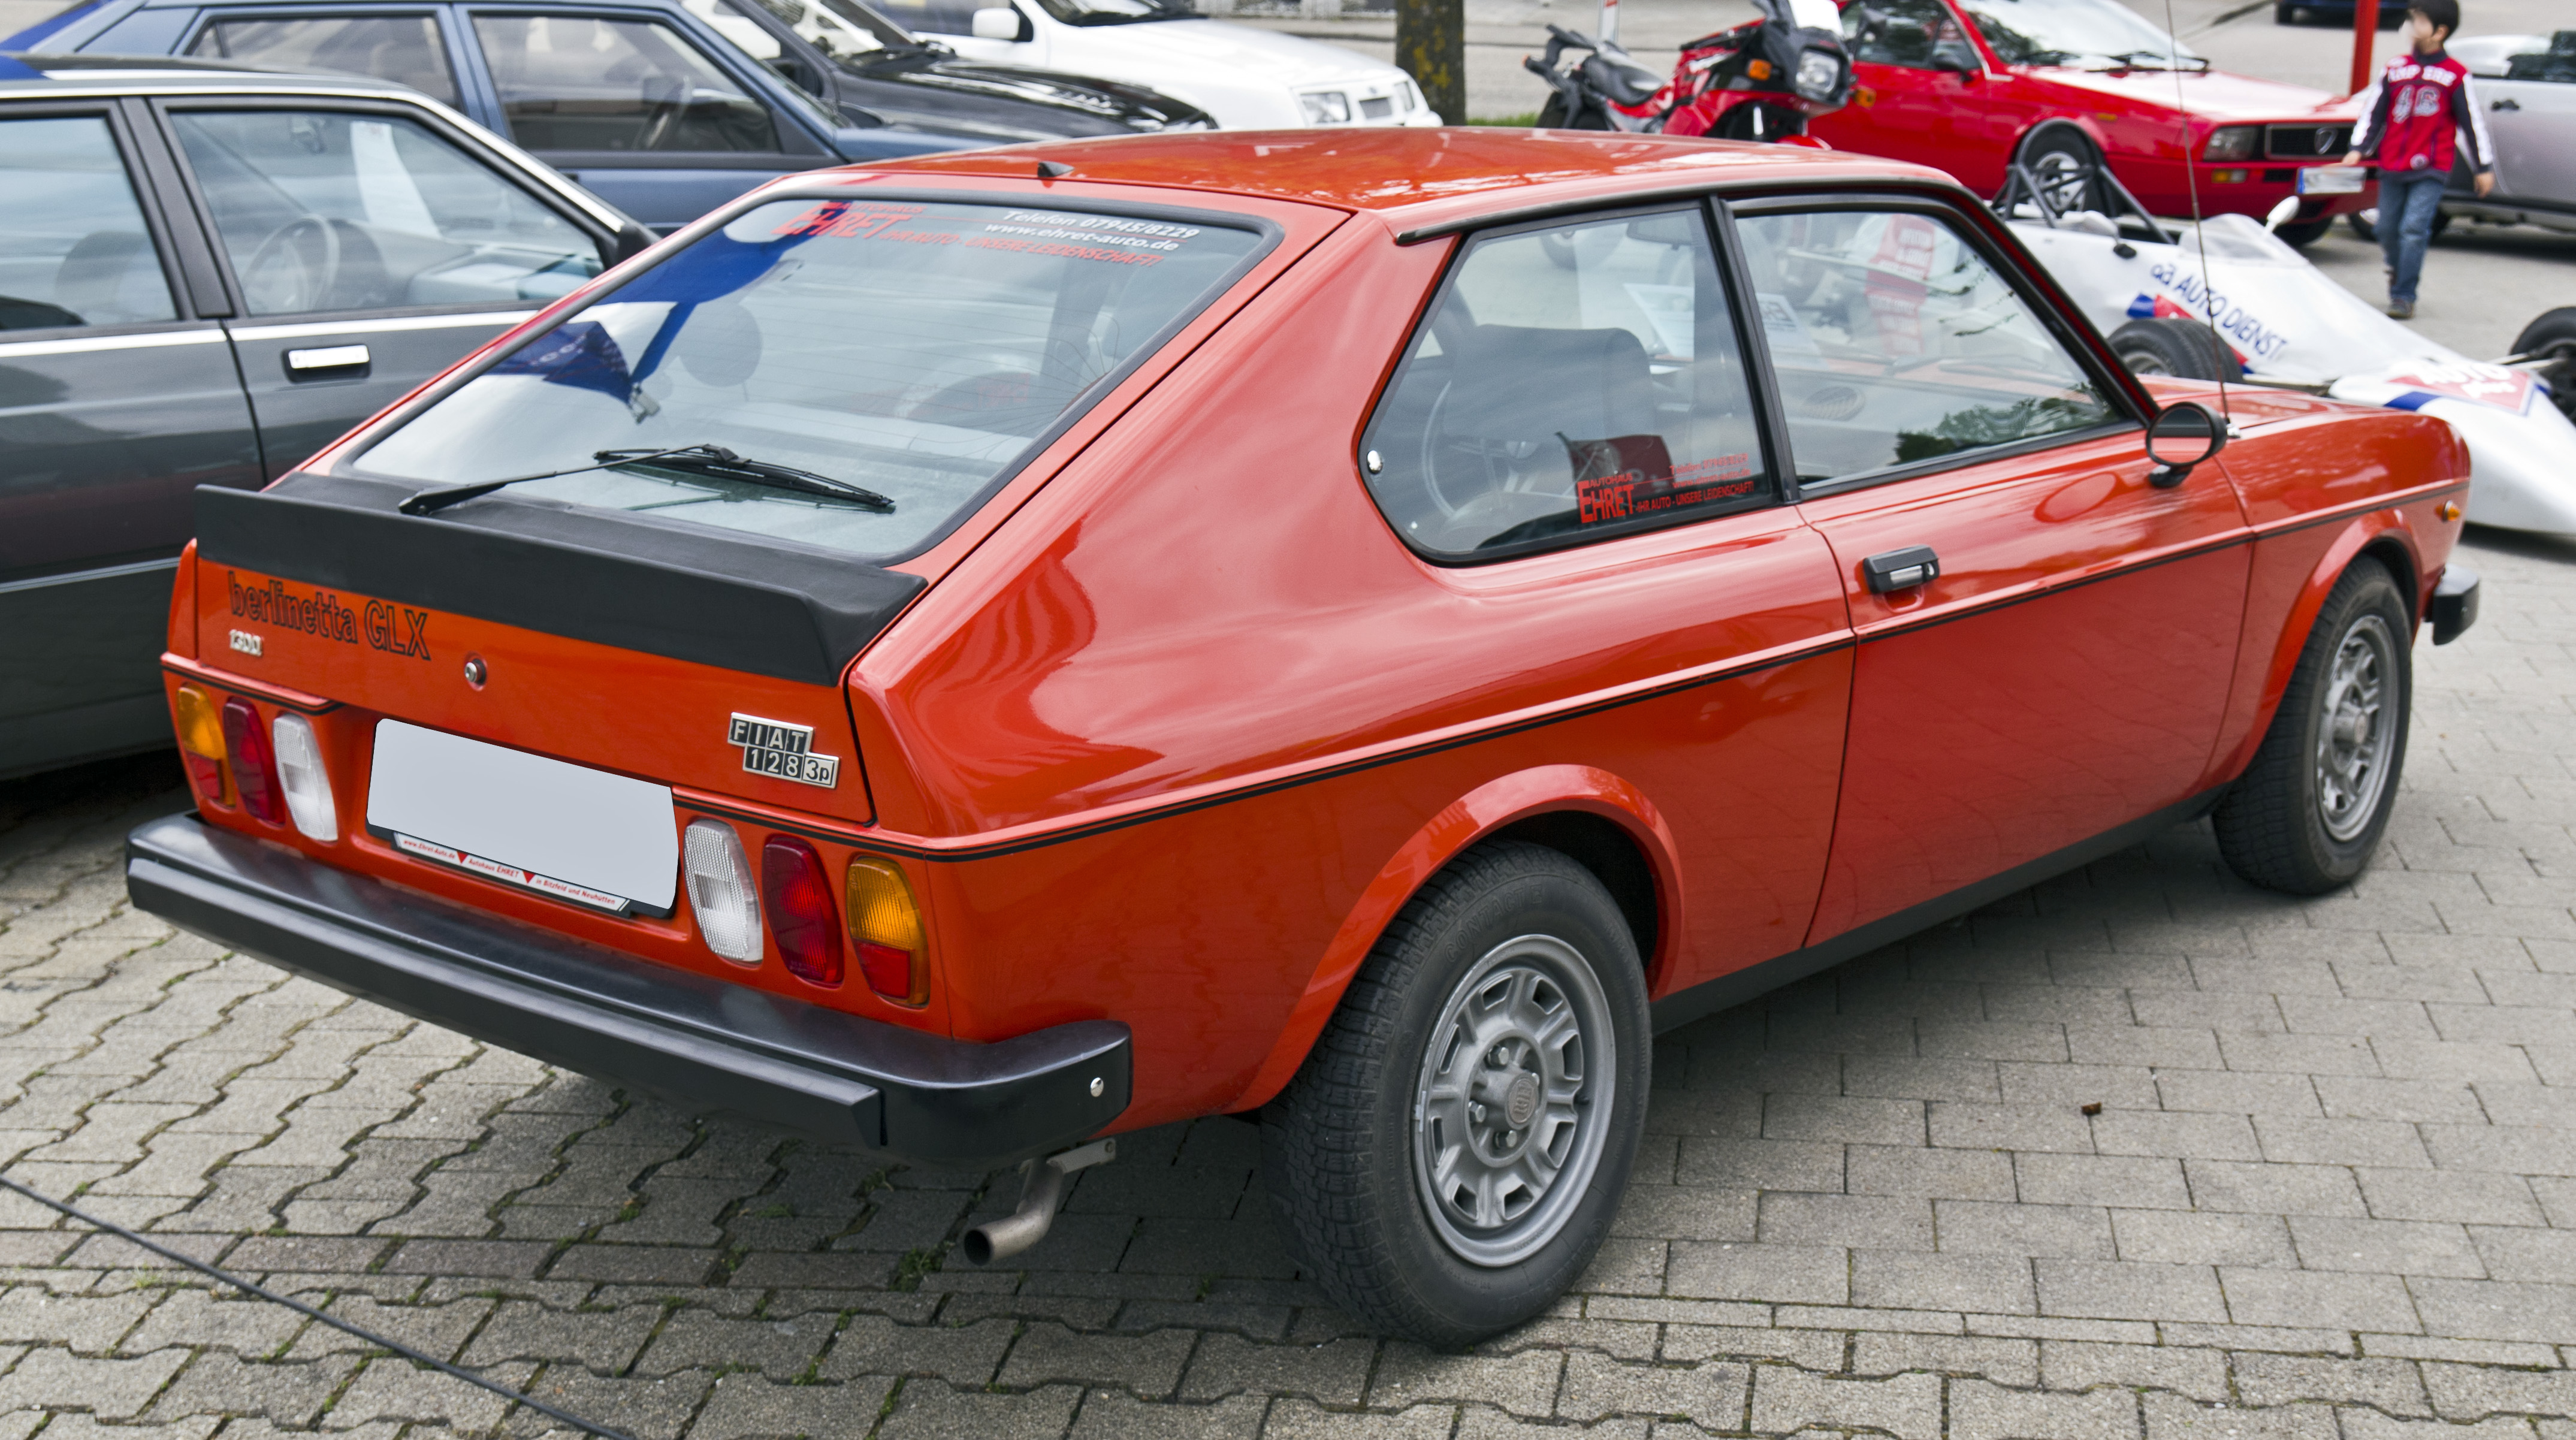 File:Fiat 128 Berlinetta rear 20110416.jpg